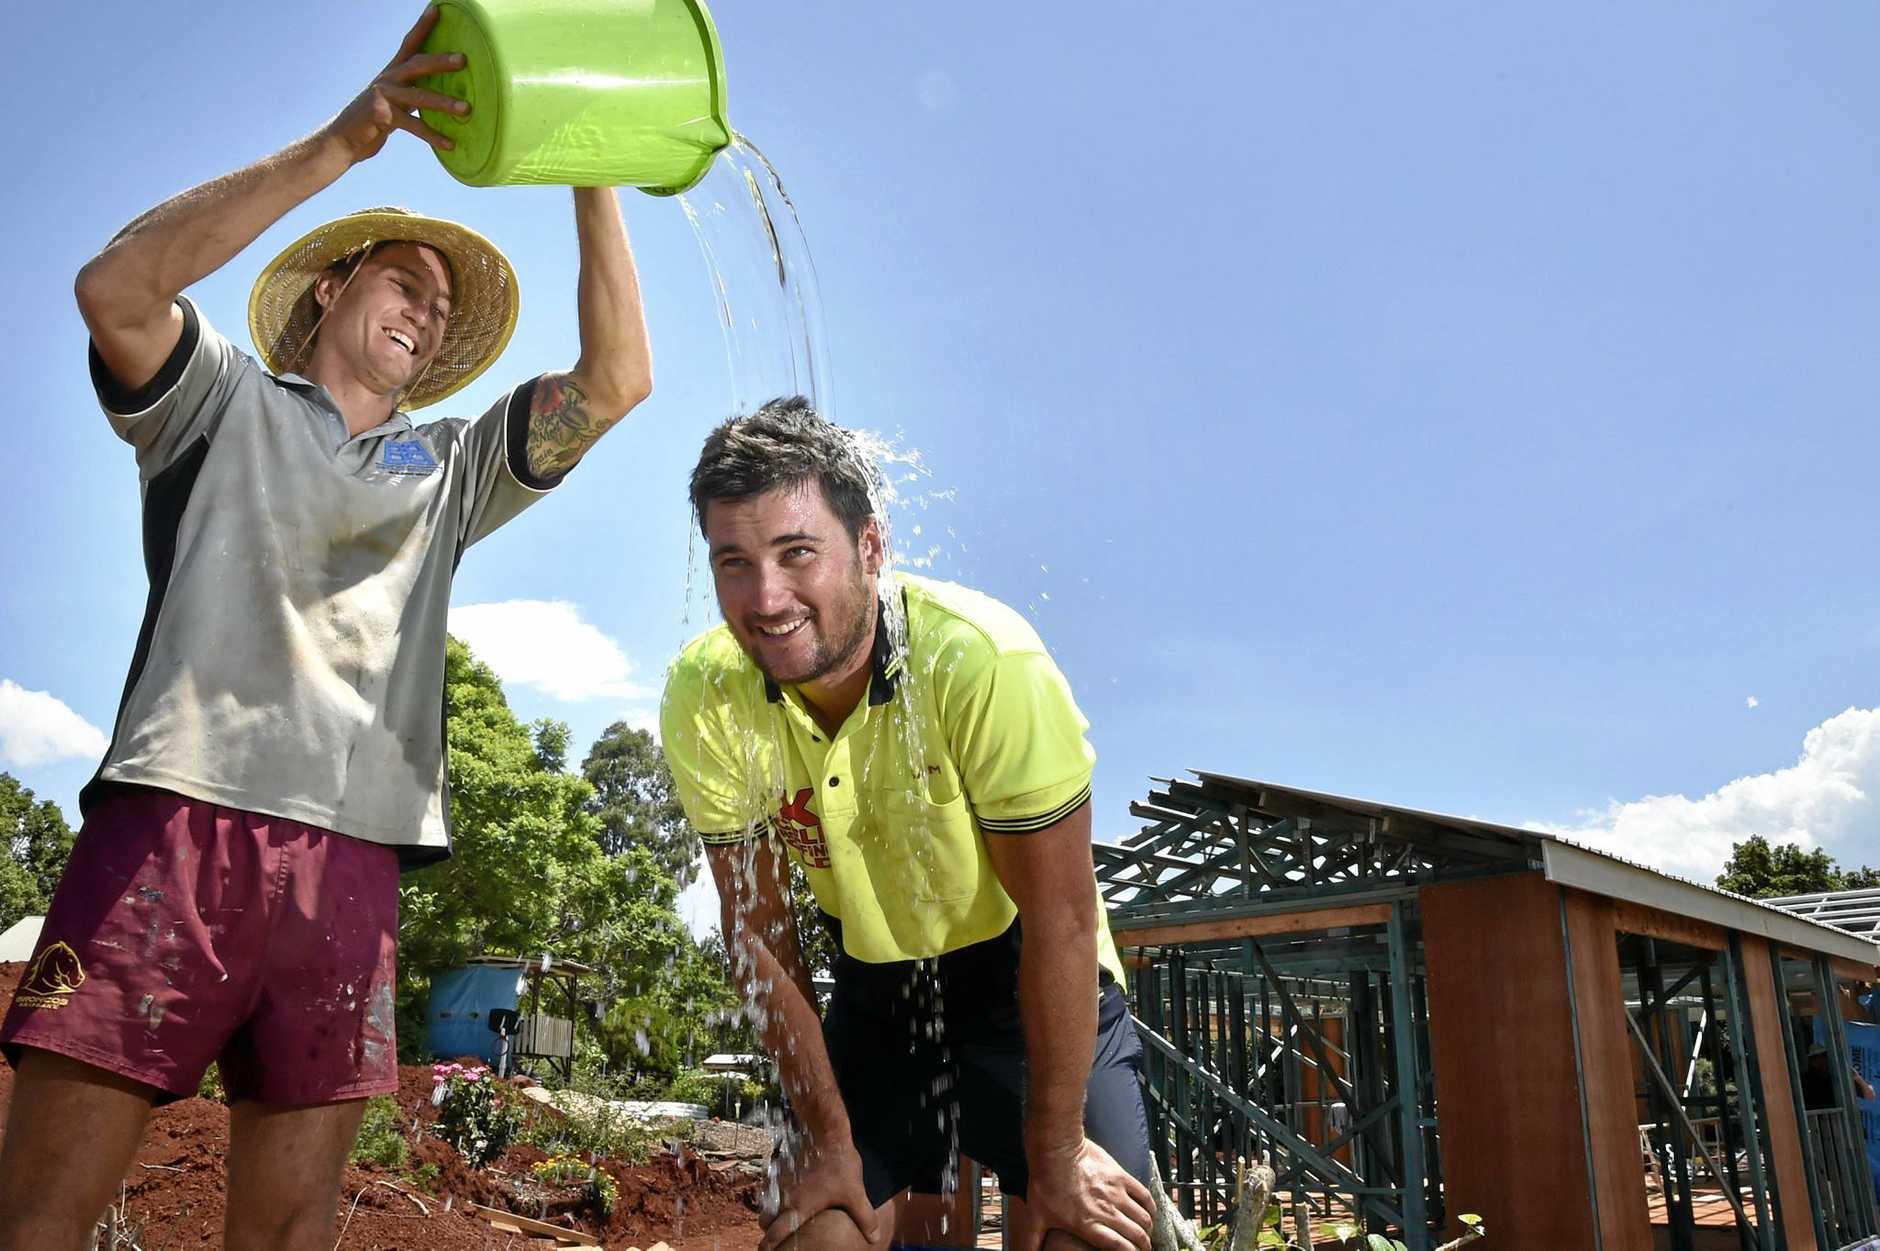 HEAT WAVE: Everyone has their own unique way of coping with above average summer heat,. Tradies Matthew Bryant (left) and Sam Finn found a simple, quick method to cool down. Photo Bev Lacey / The Chronicle